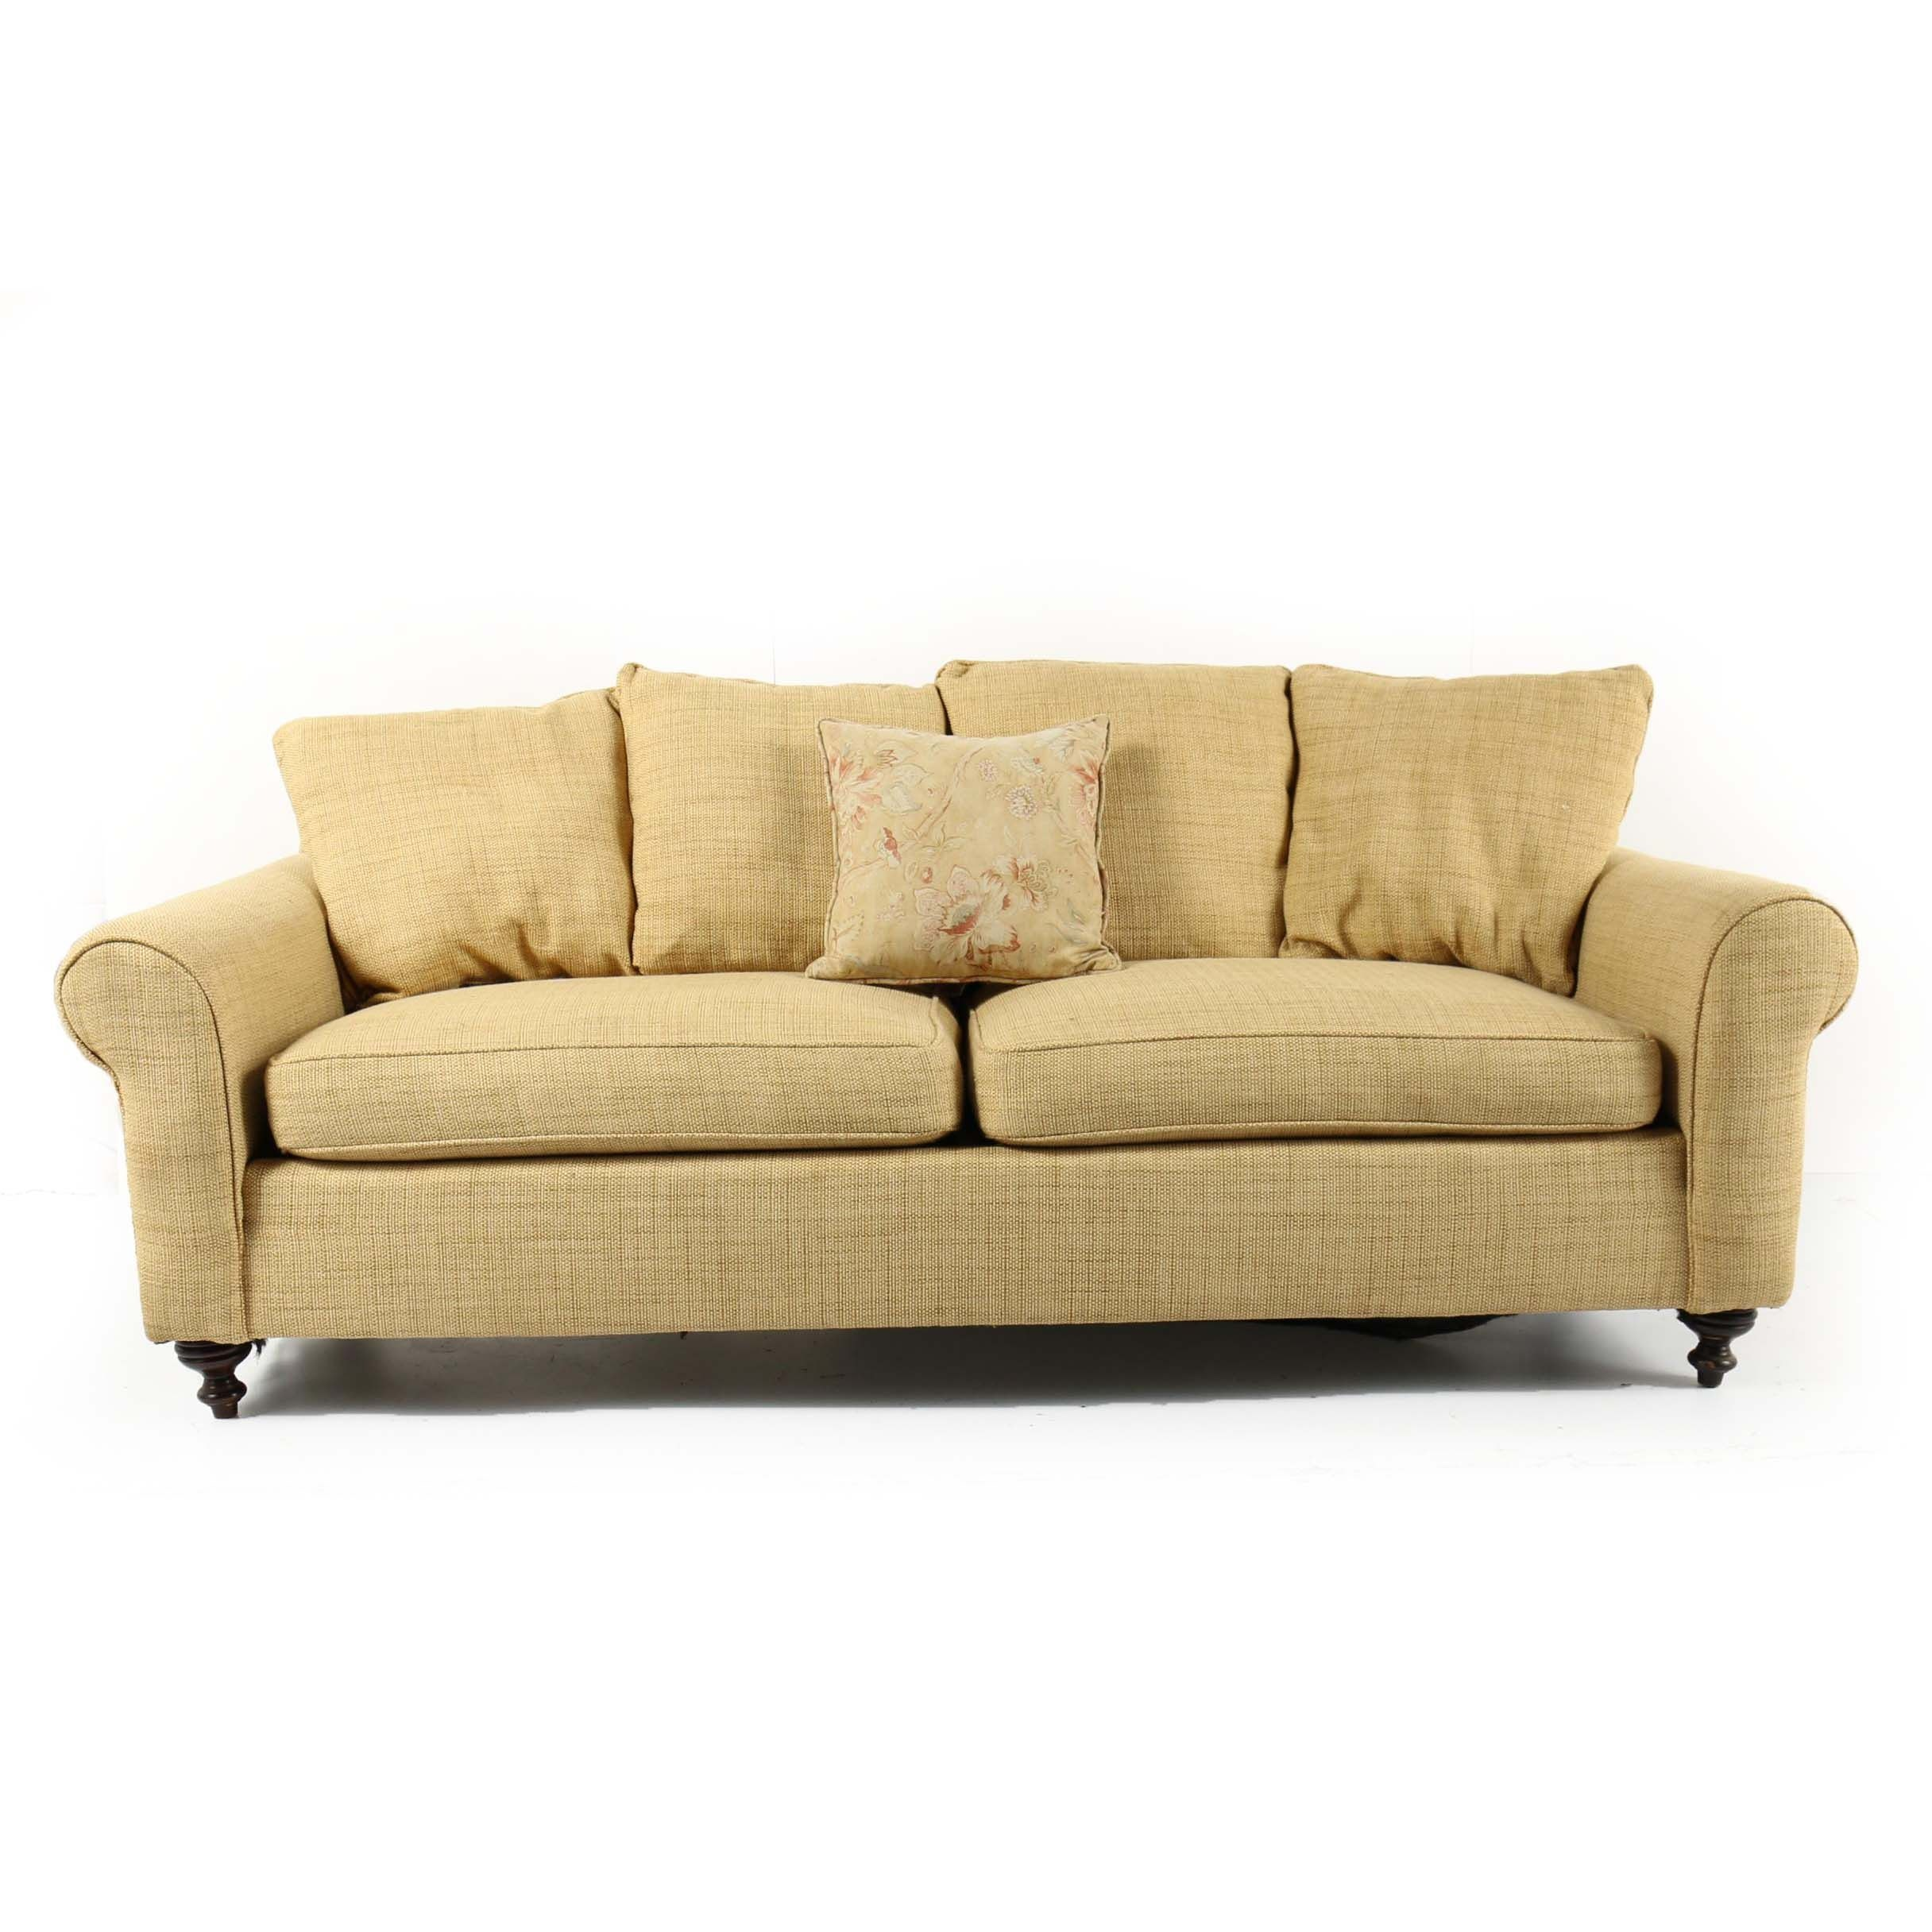 Contemporary Tan Upholstered Sofa